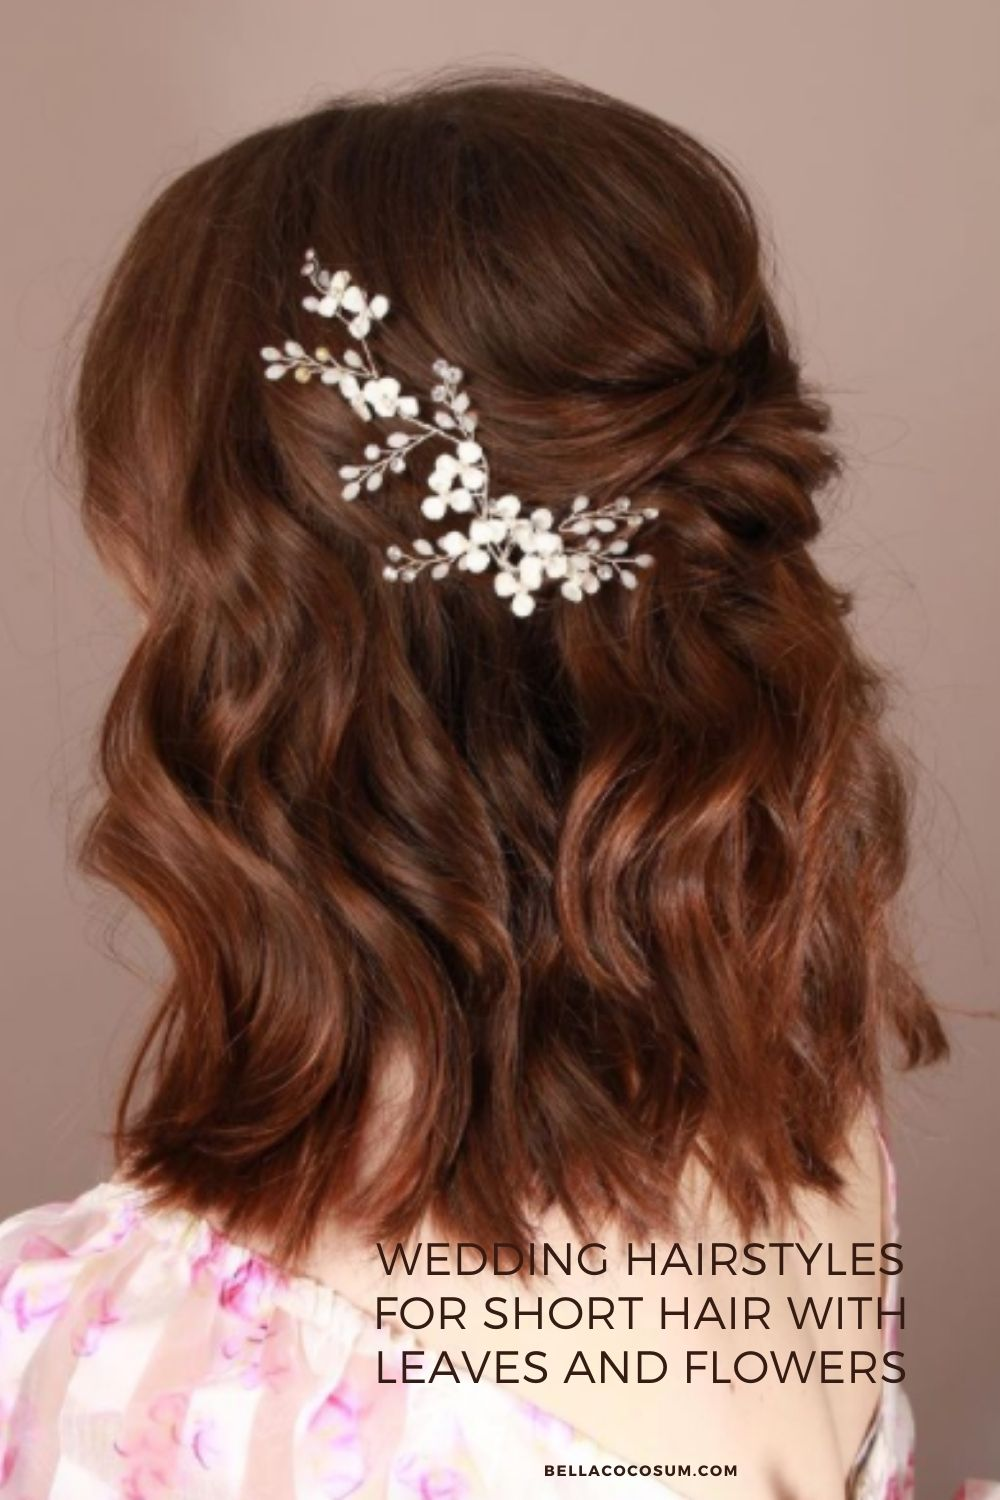 Wedding hairstyles for short hair with leaves and flowers